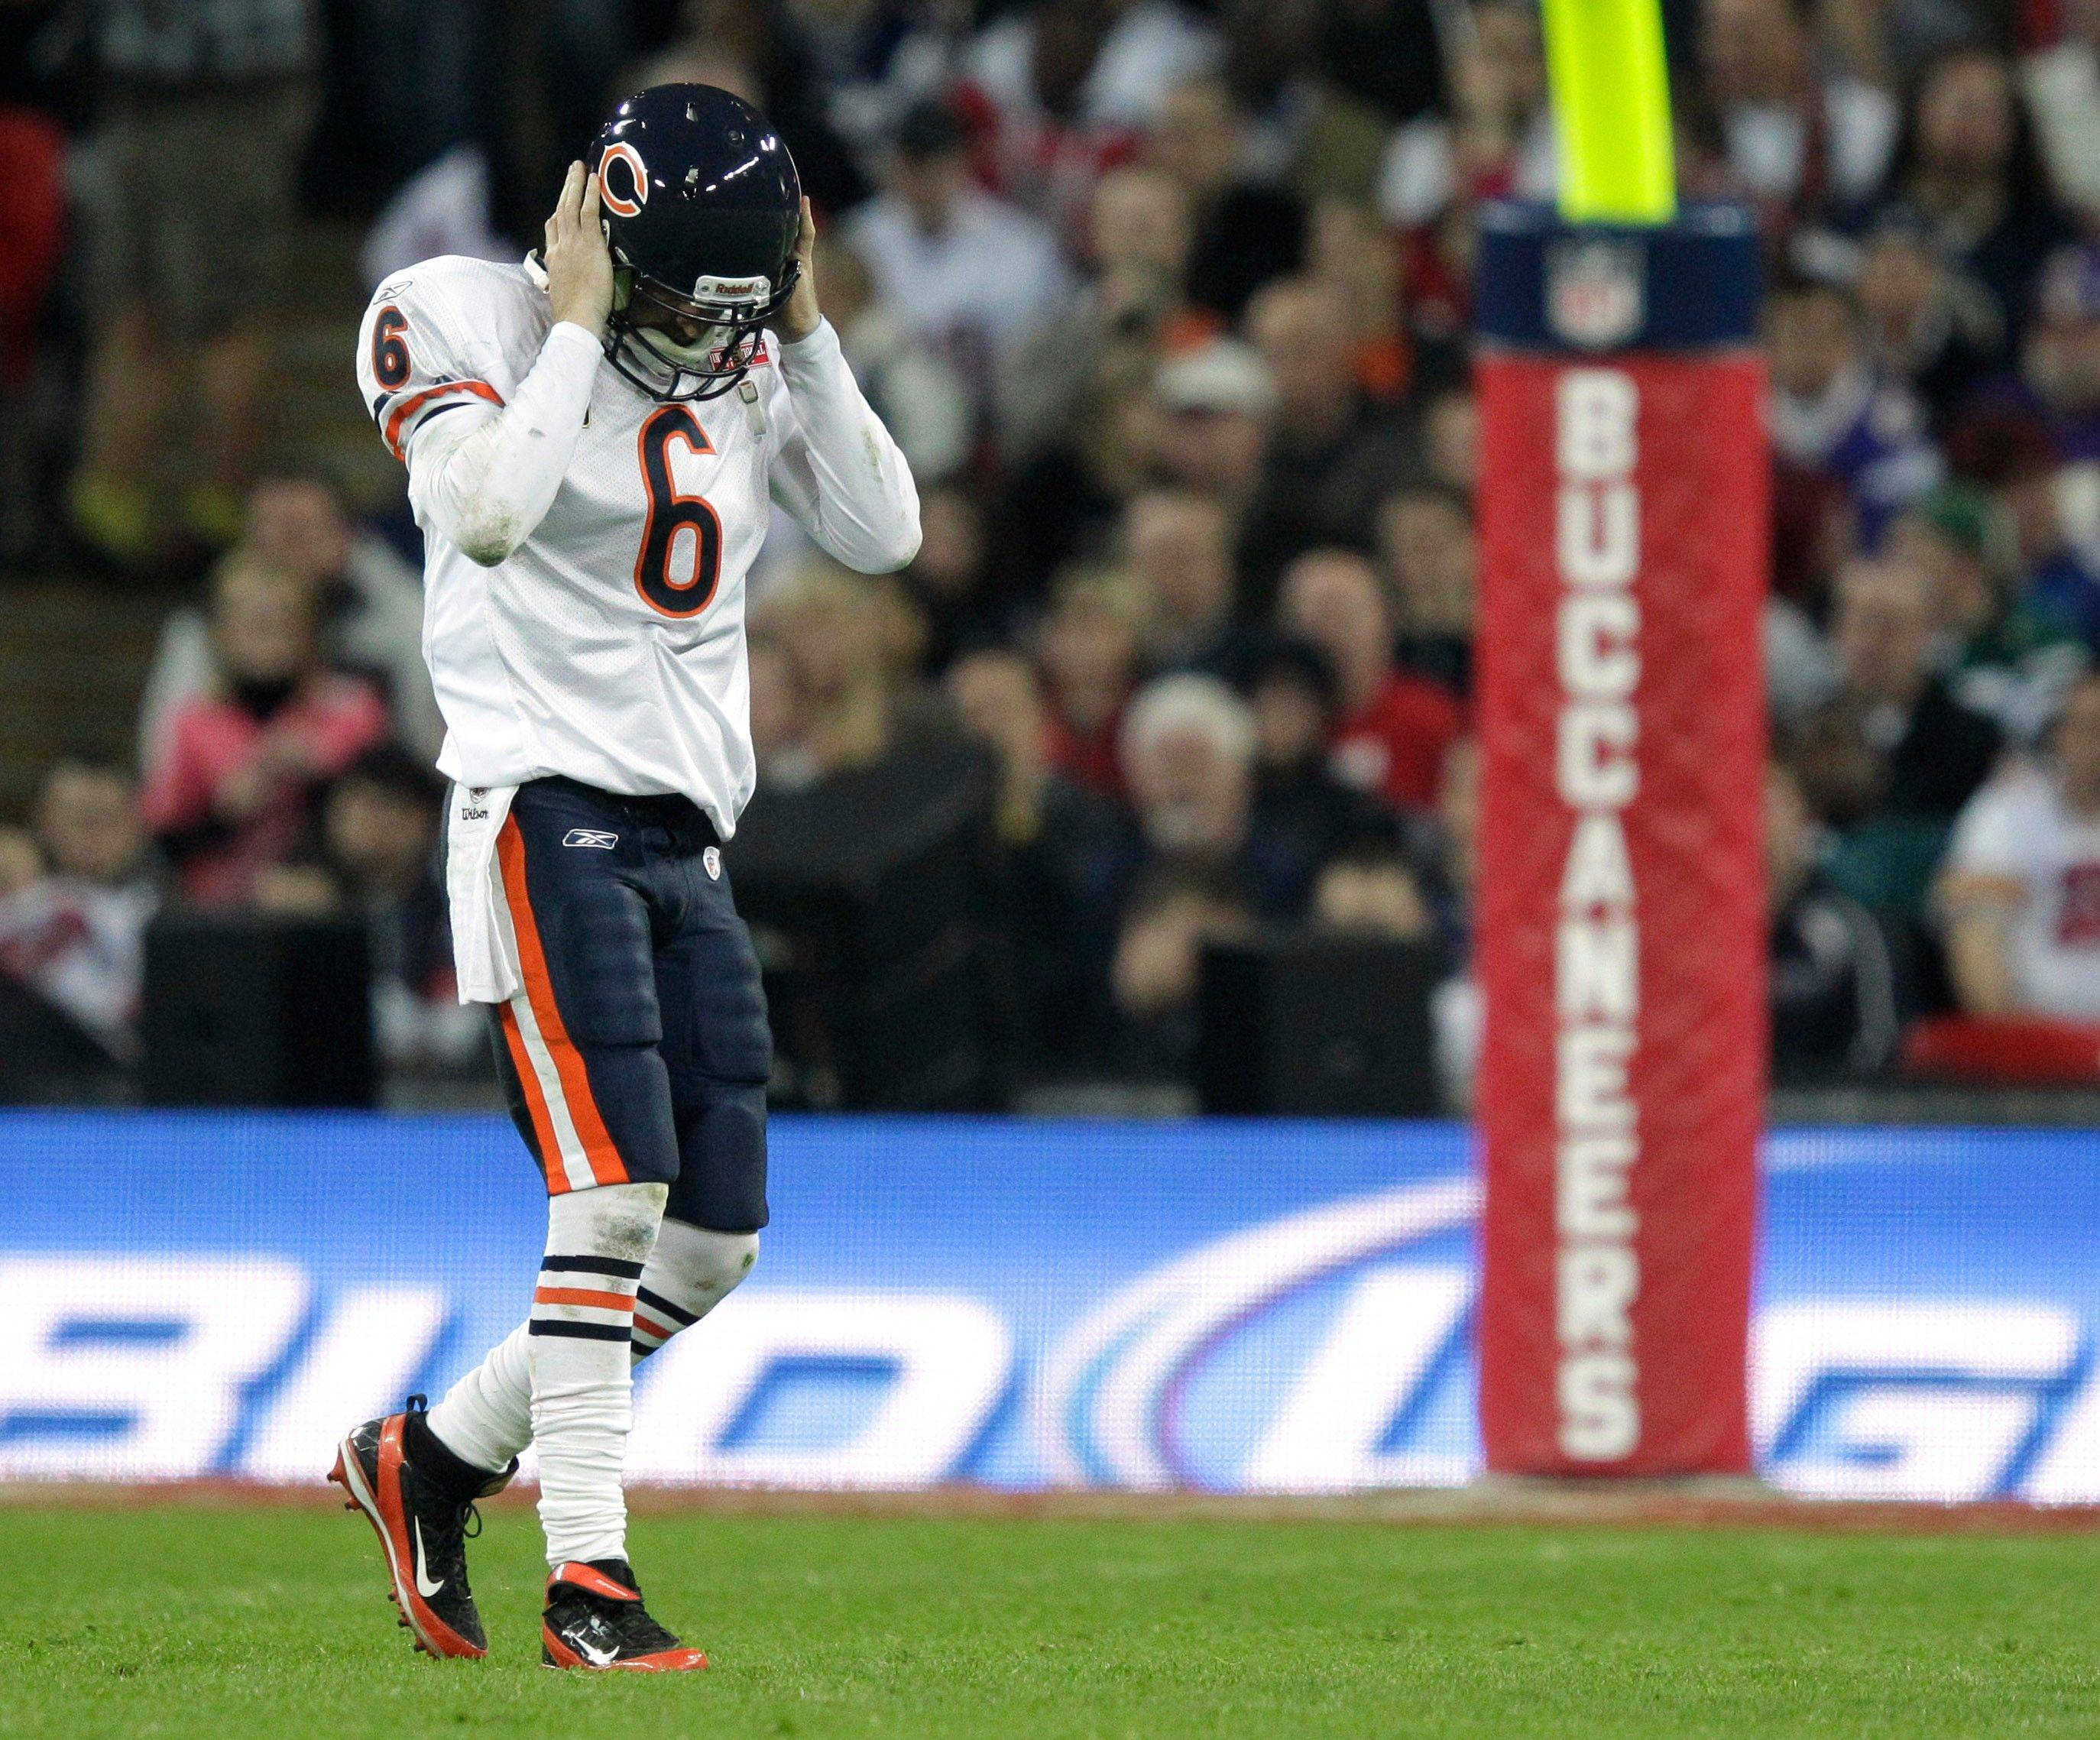 Chicago Bears quarterback Jay Cutler holds his helmet after throwing a pass intercepted by Tampa Bay Buccaneers free safety Corey Lynch during the second half.